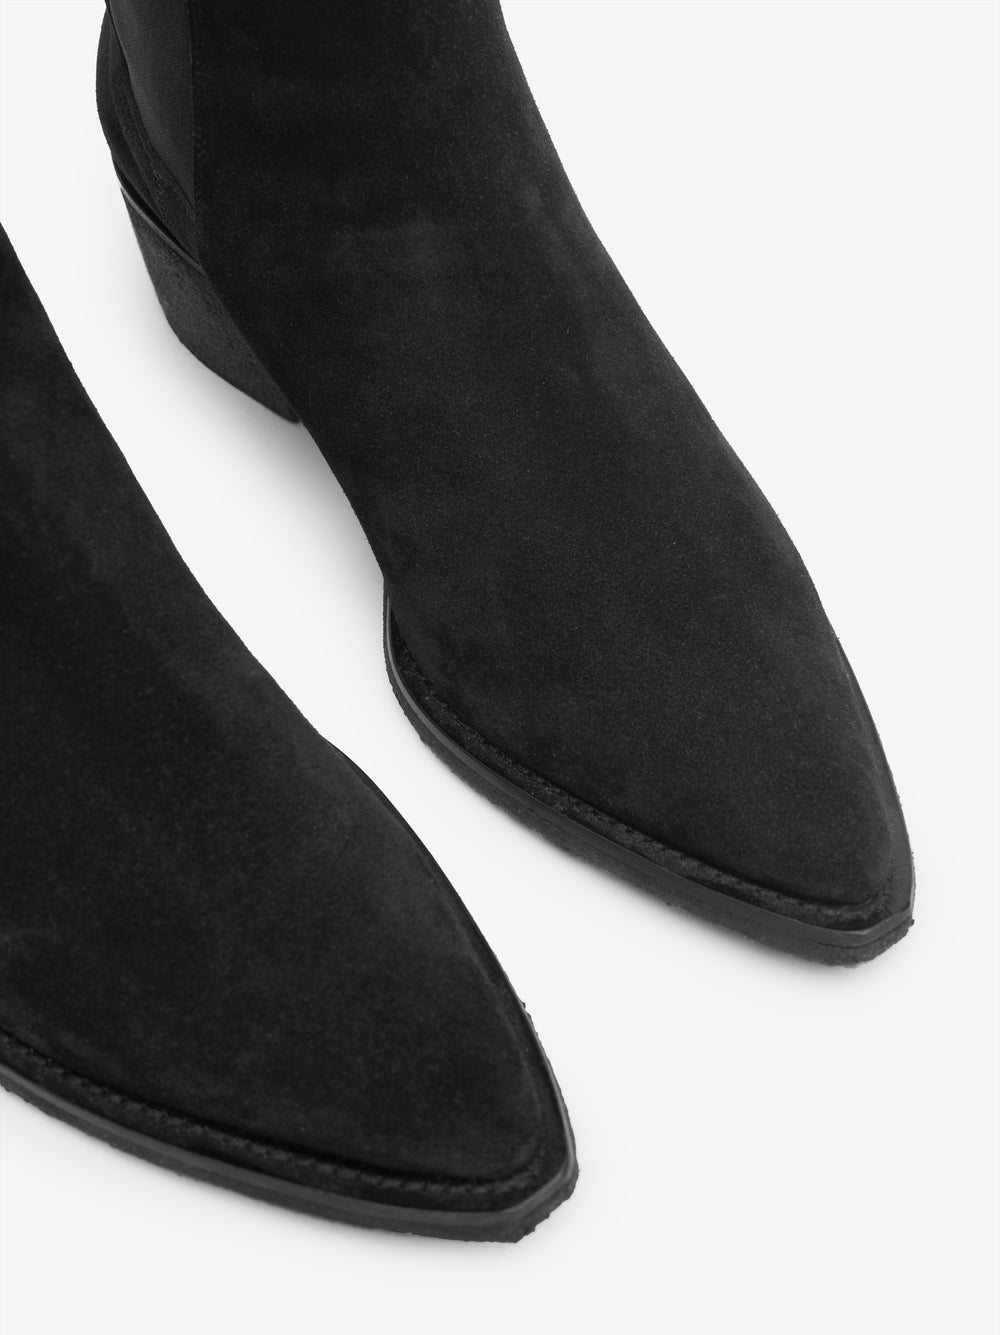 CHELSEA CREPE SOLE BOOT - BLACK